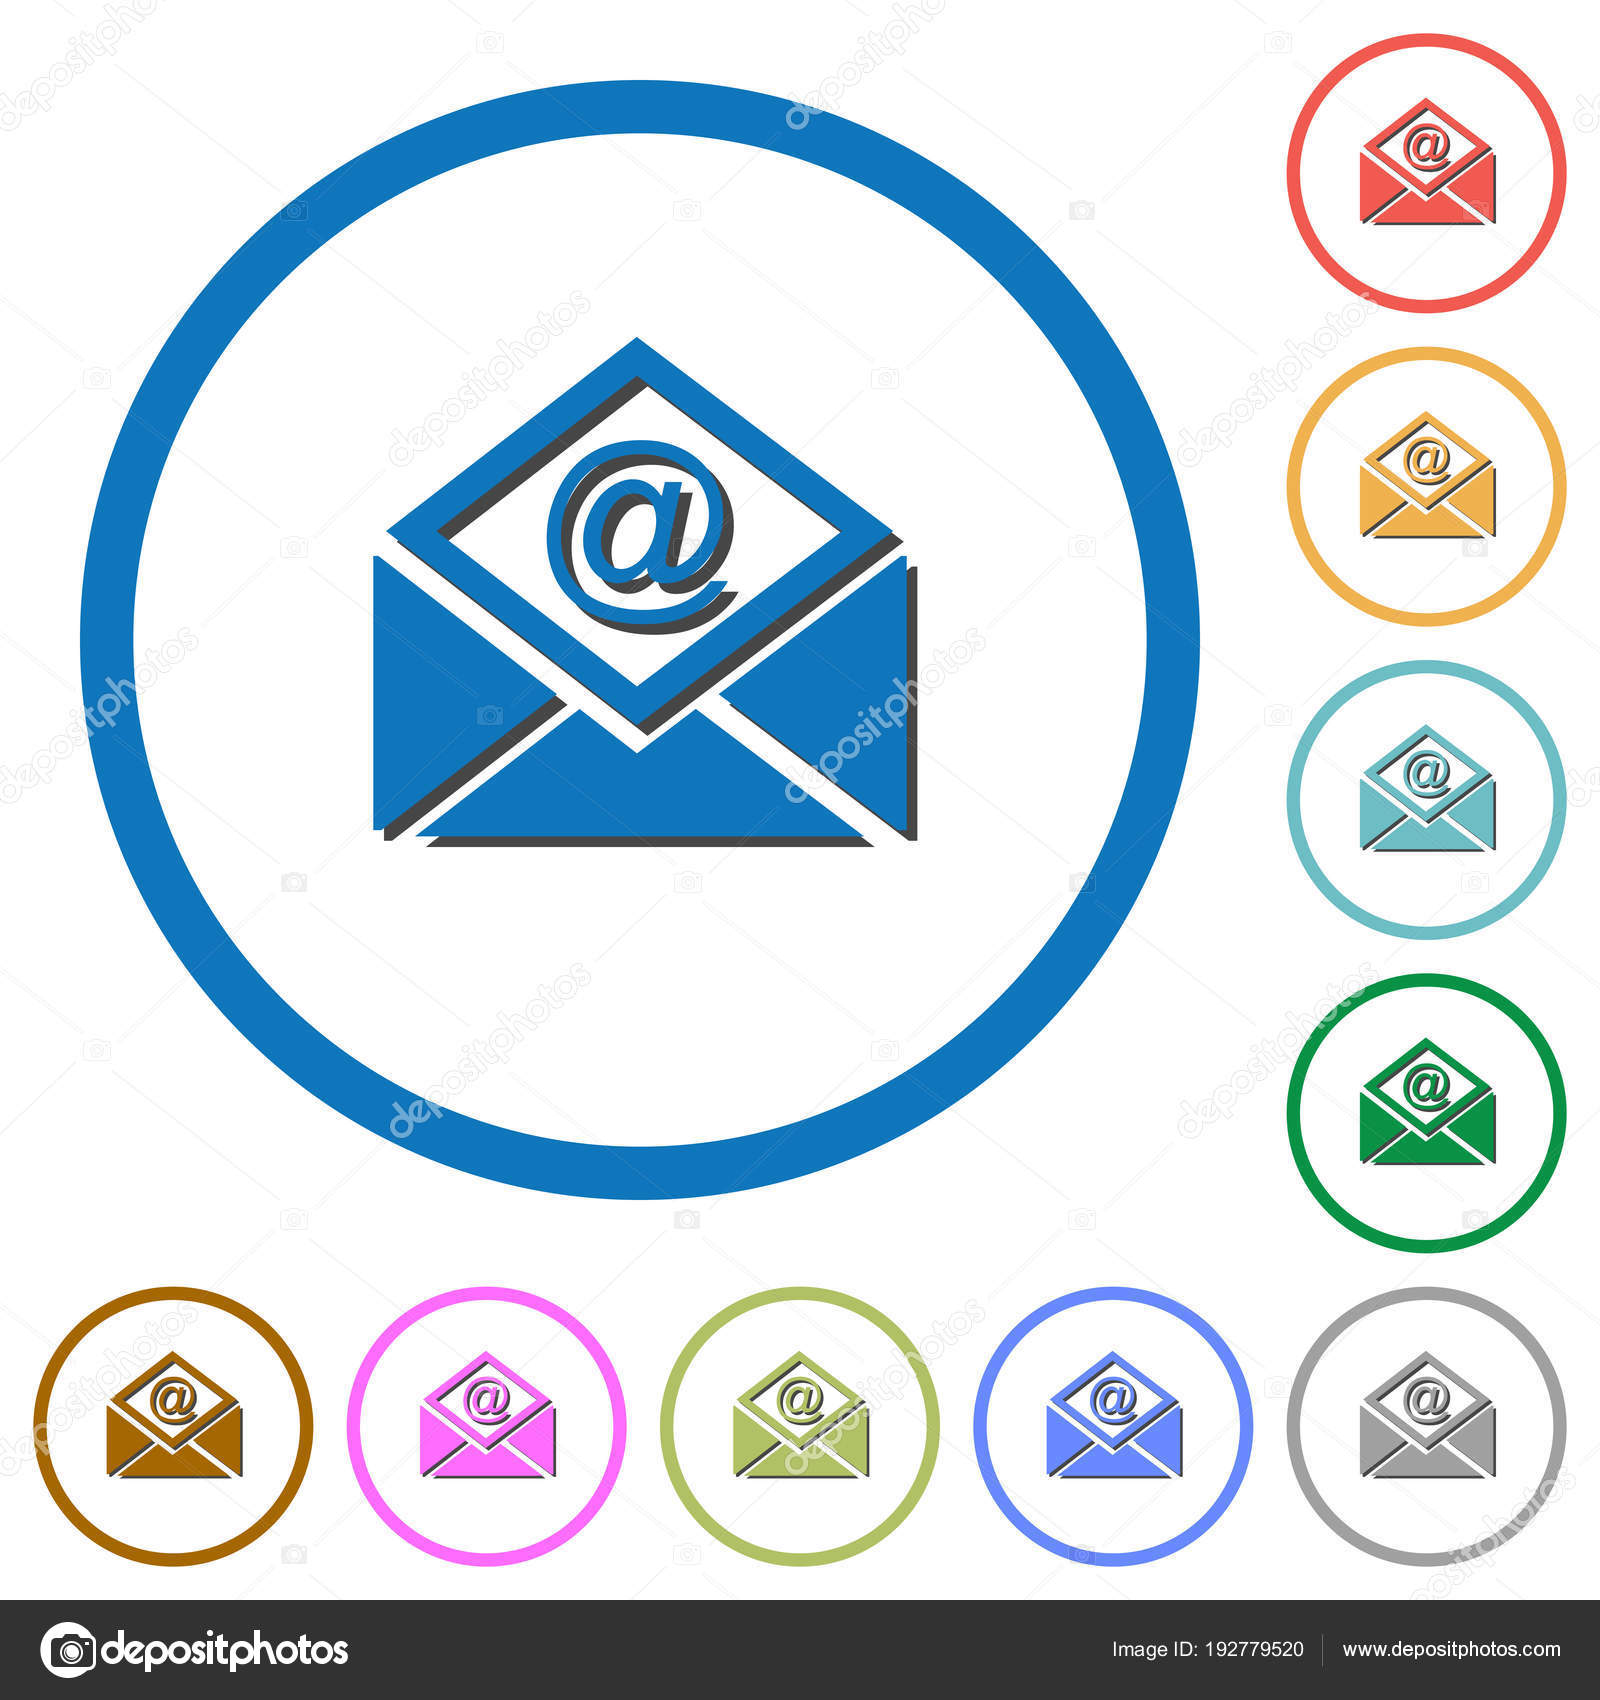 Open Mail With Email Symbol Icons With Shadows And Outlines Stock